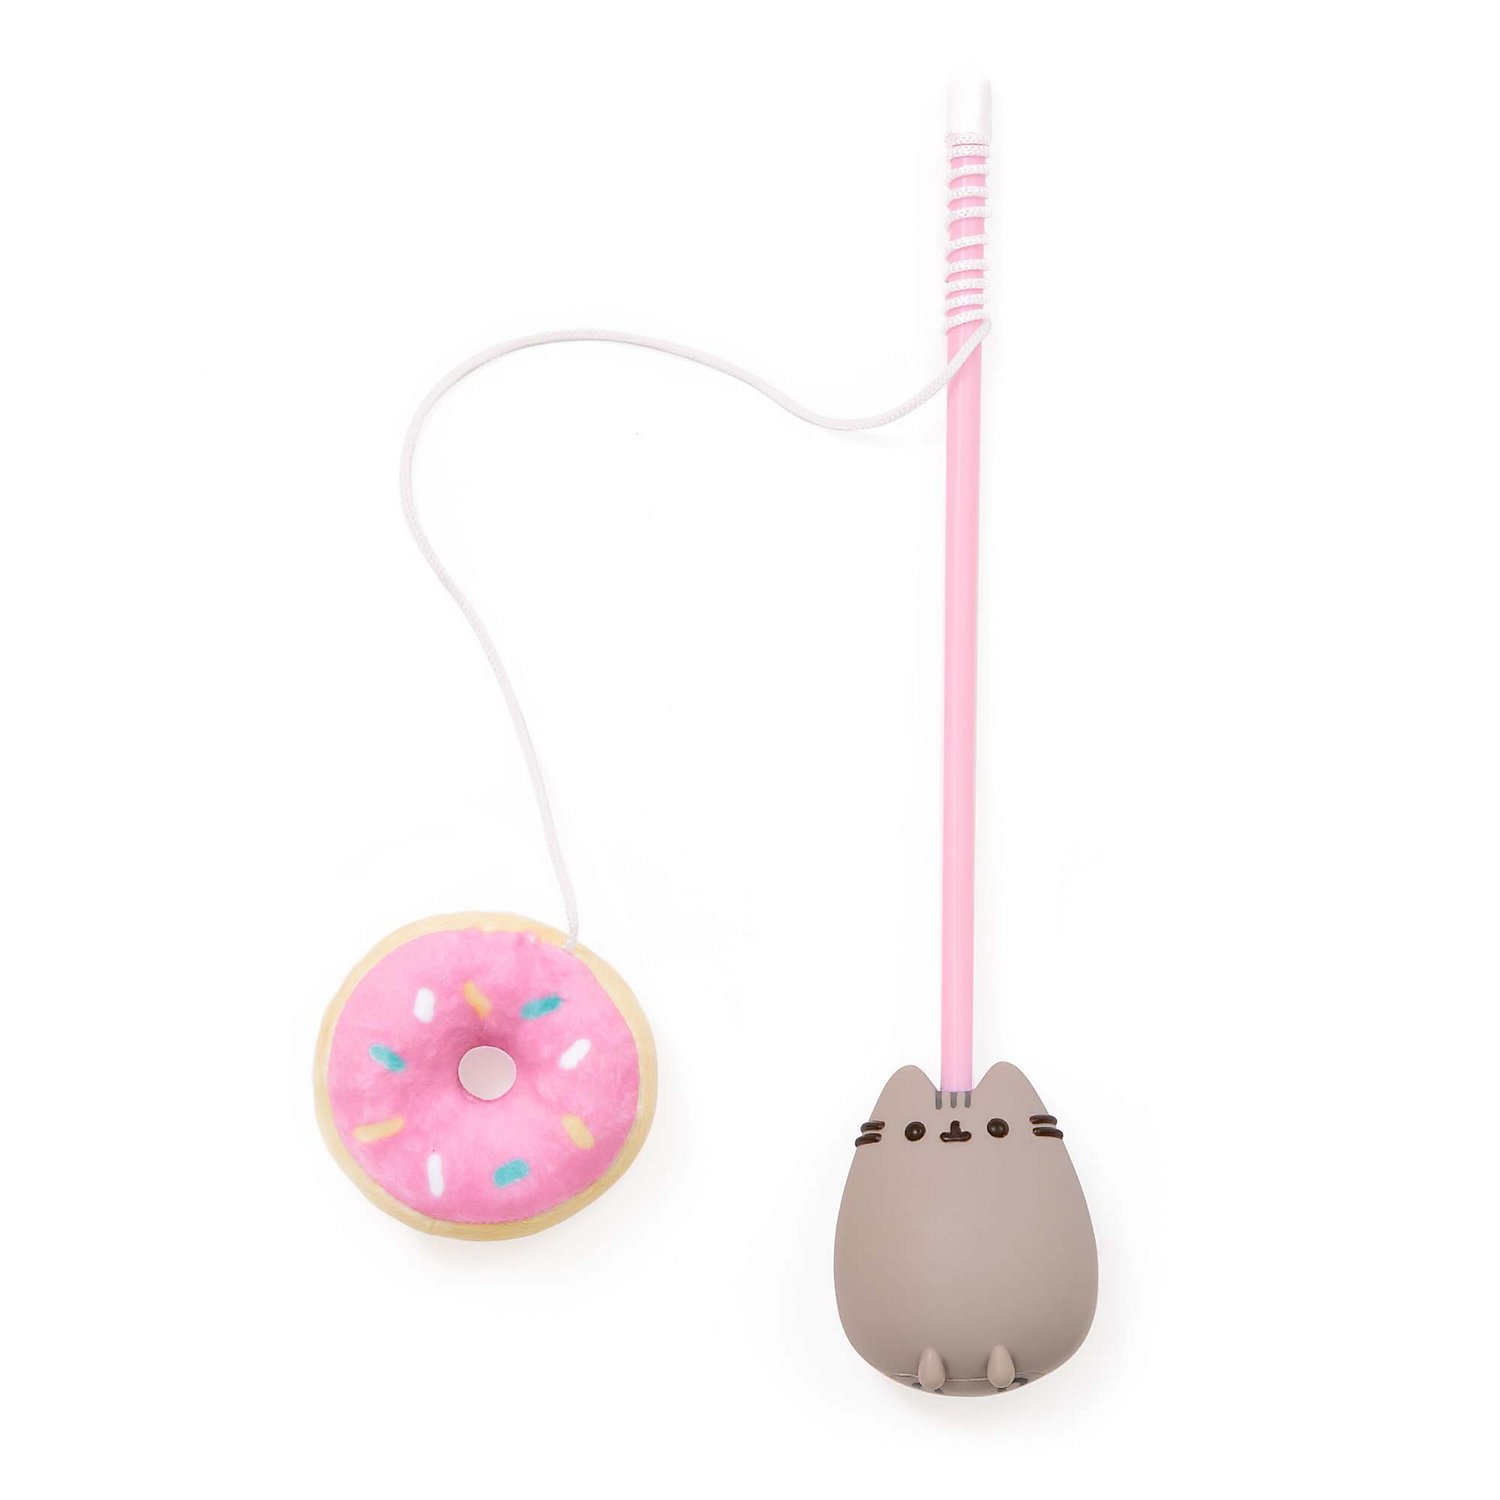 Pusheen Donut Cat Teaser Toy